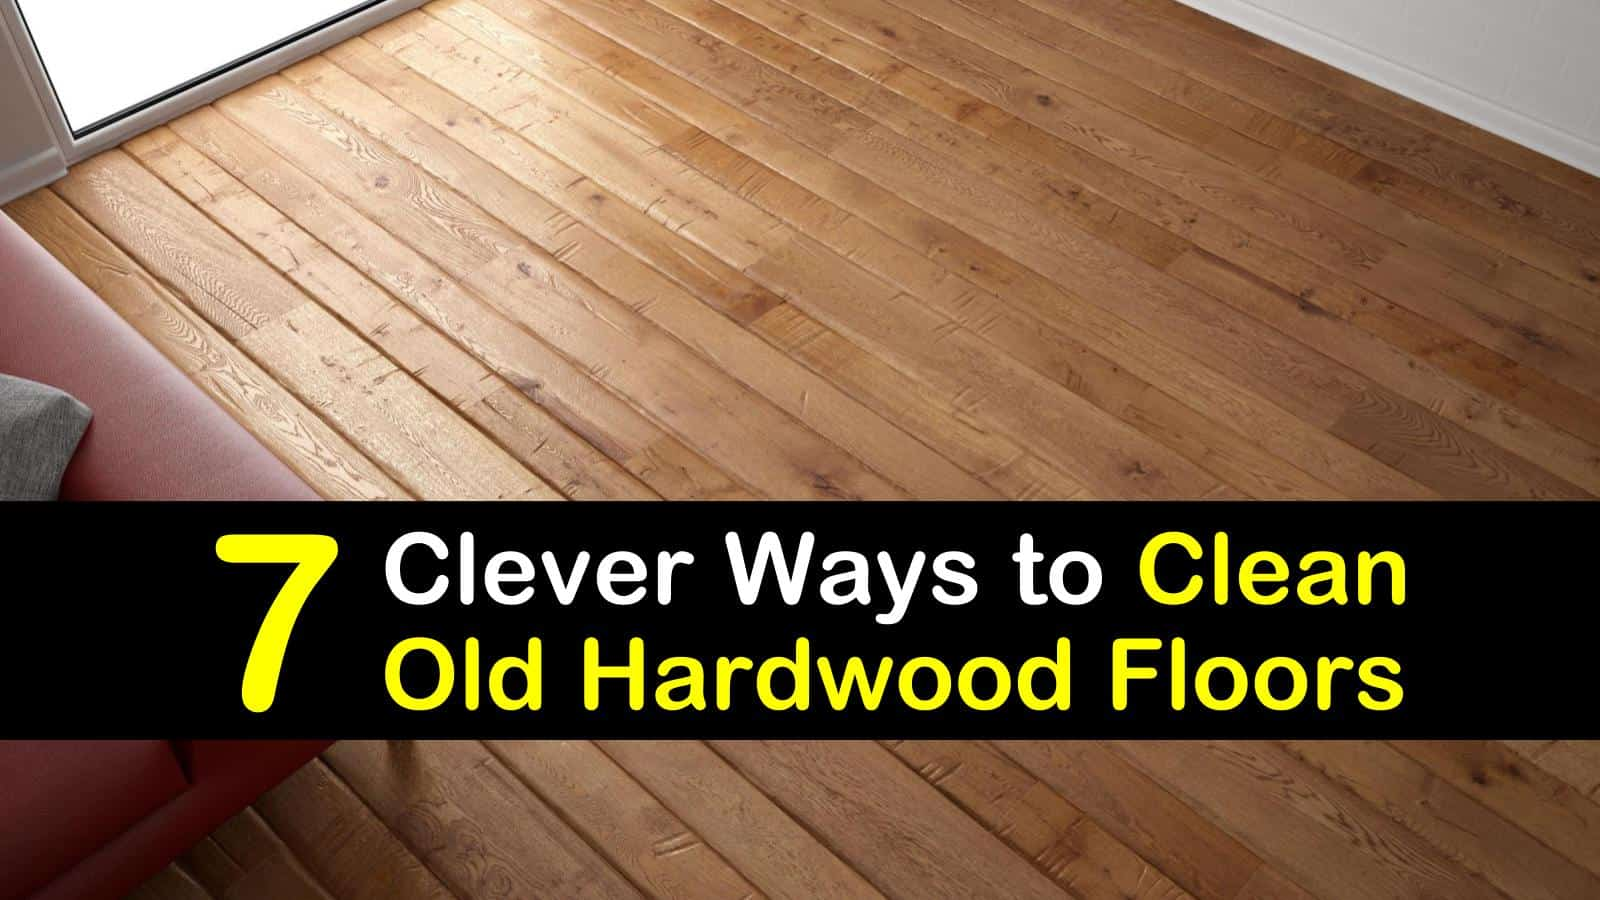 7 Clever Ways To Clean Old Hardwood Floors